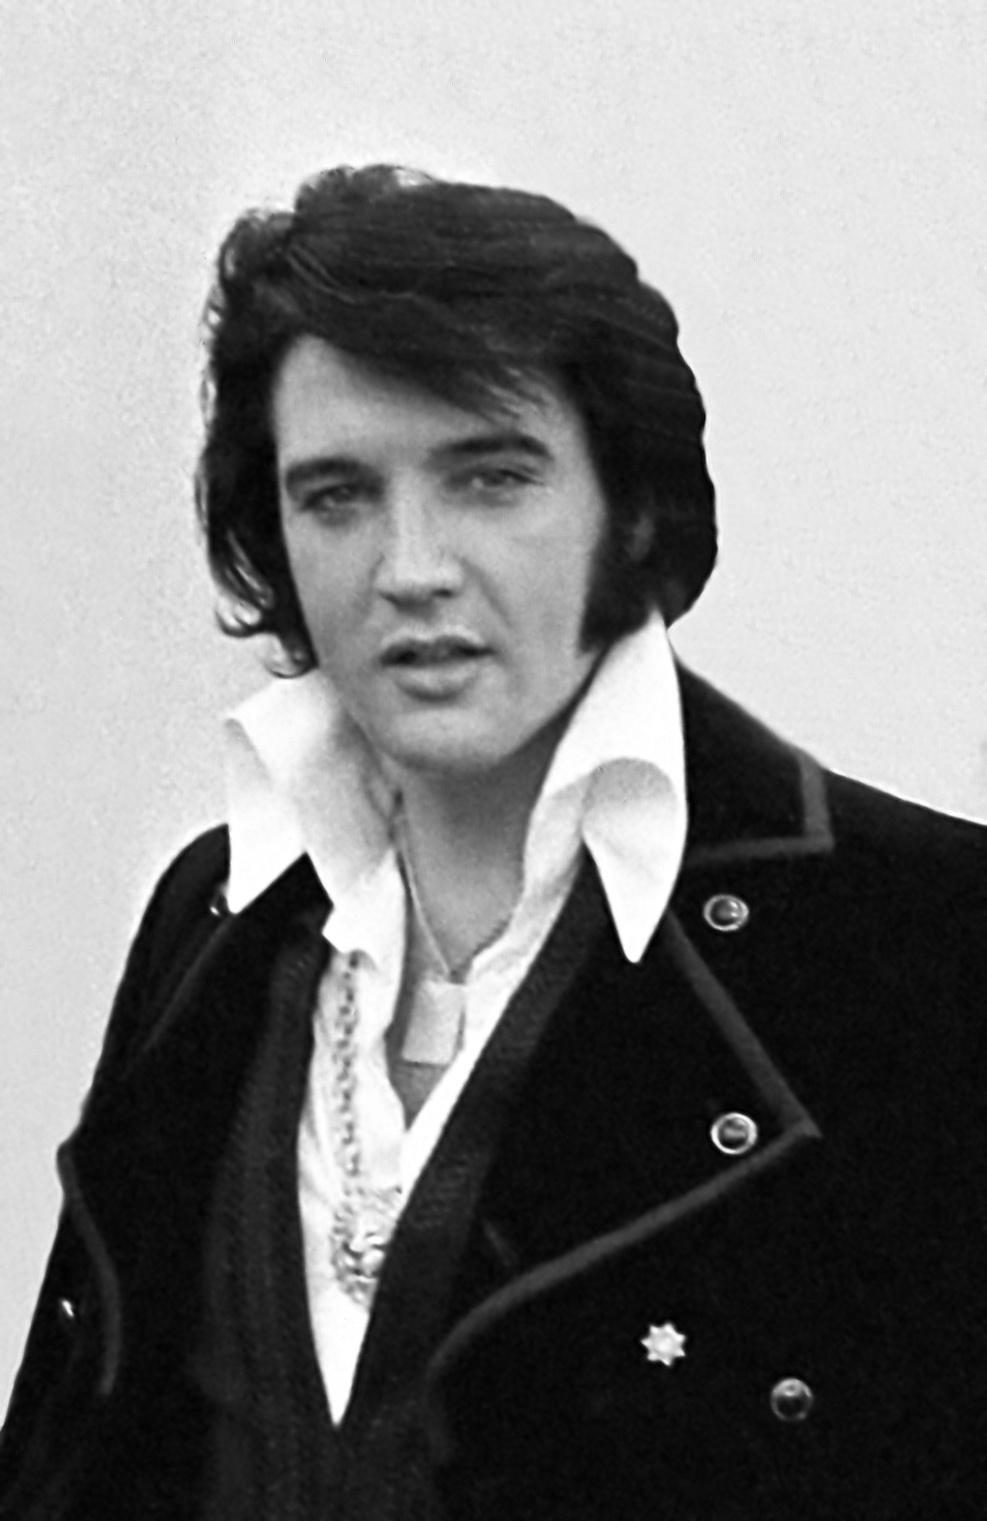 What musical genre was Elvis Presley from ?